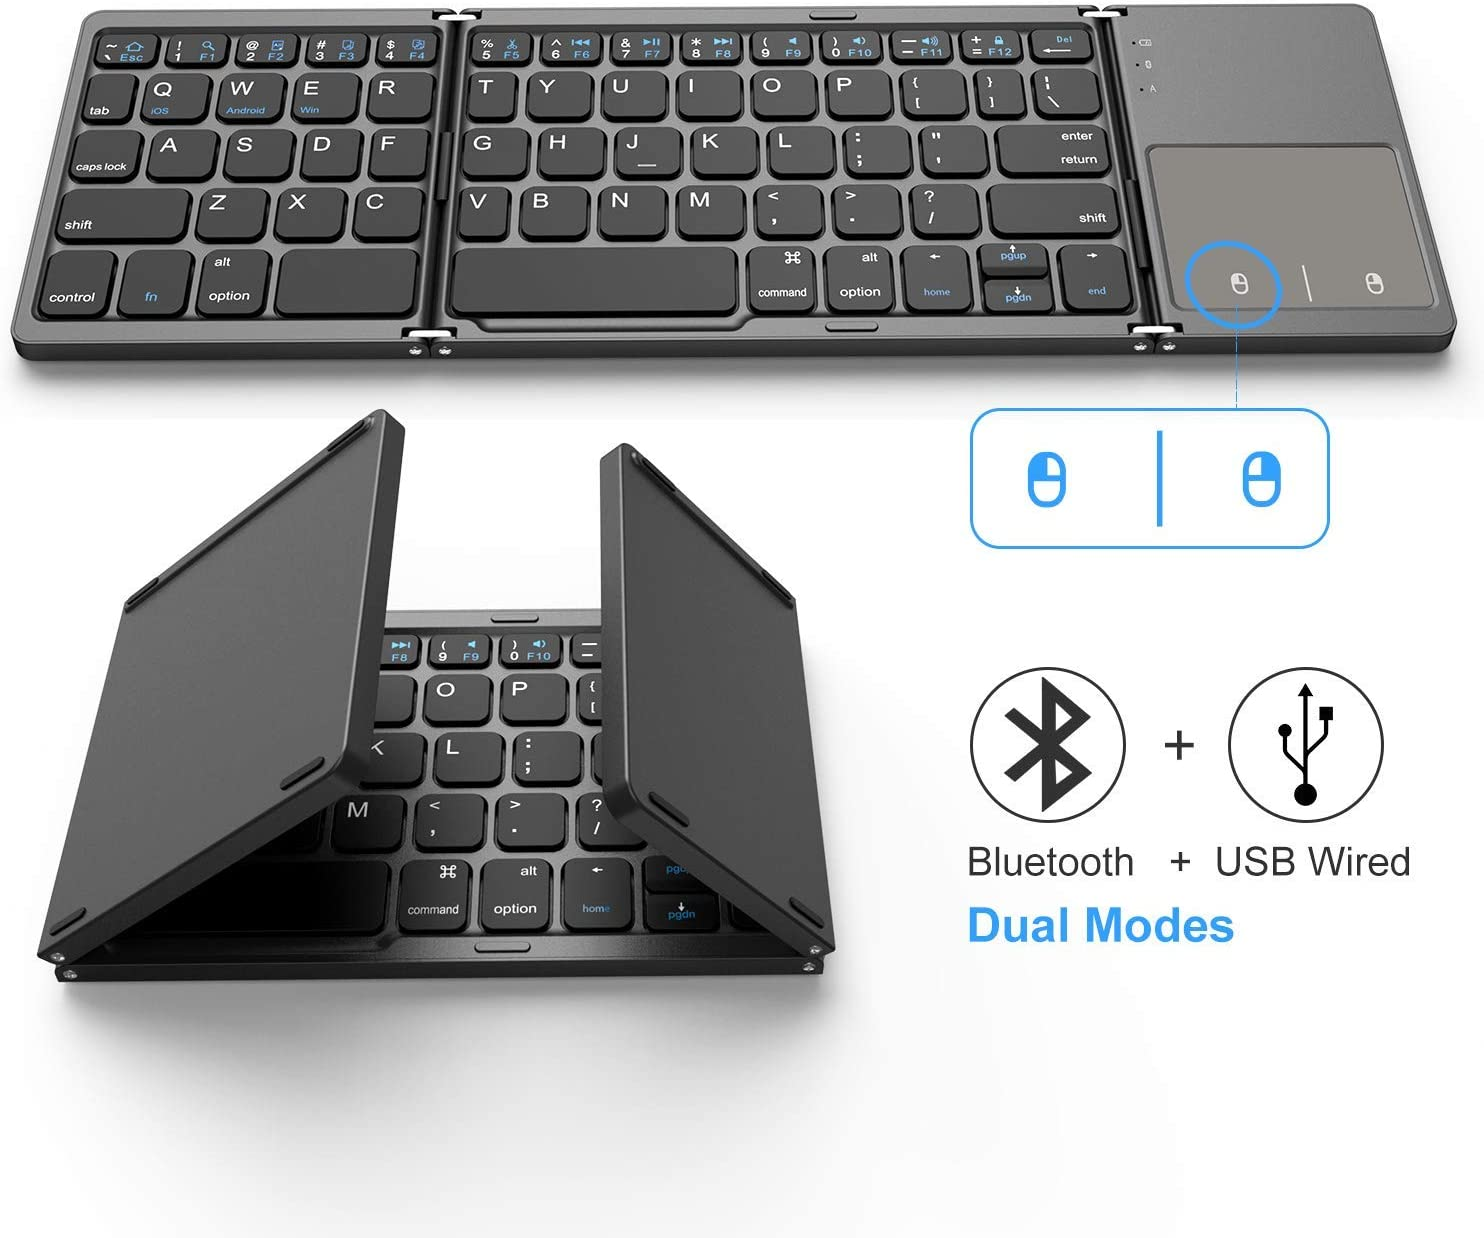 Jelly Comb Dual Mode Foldable Keyboard